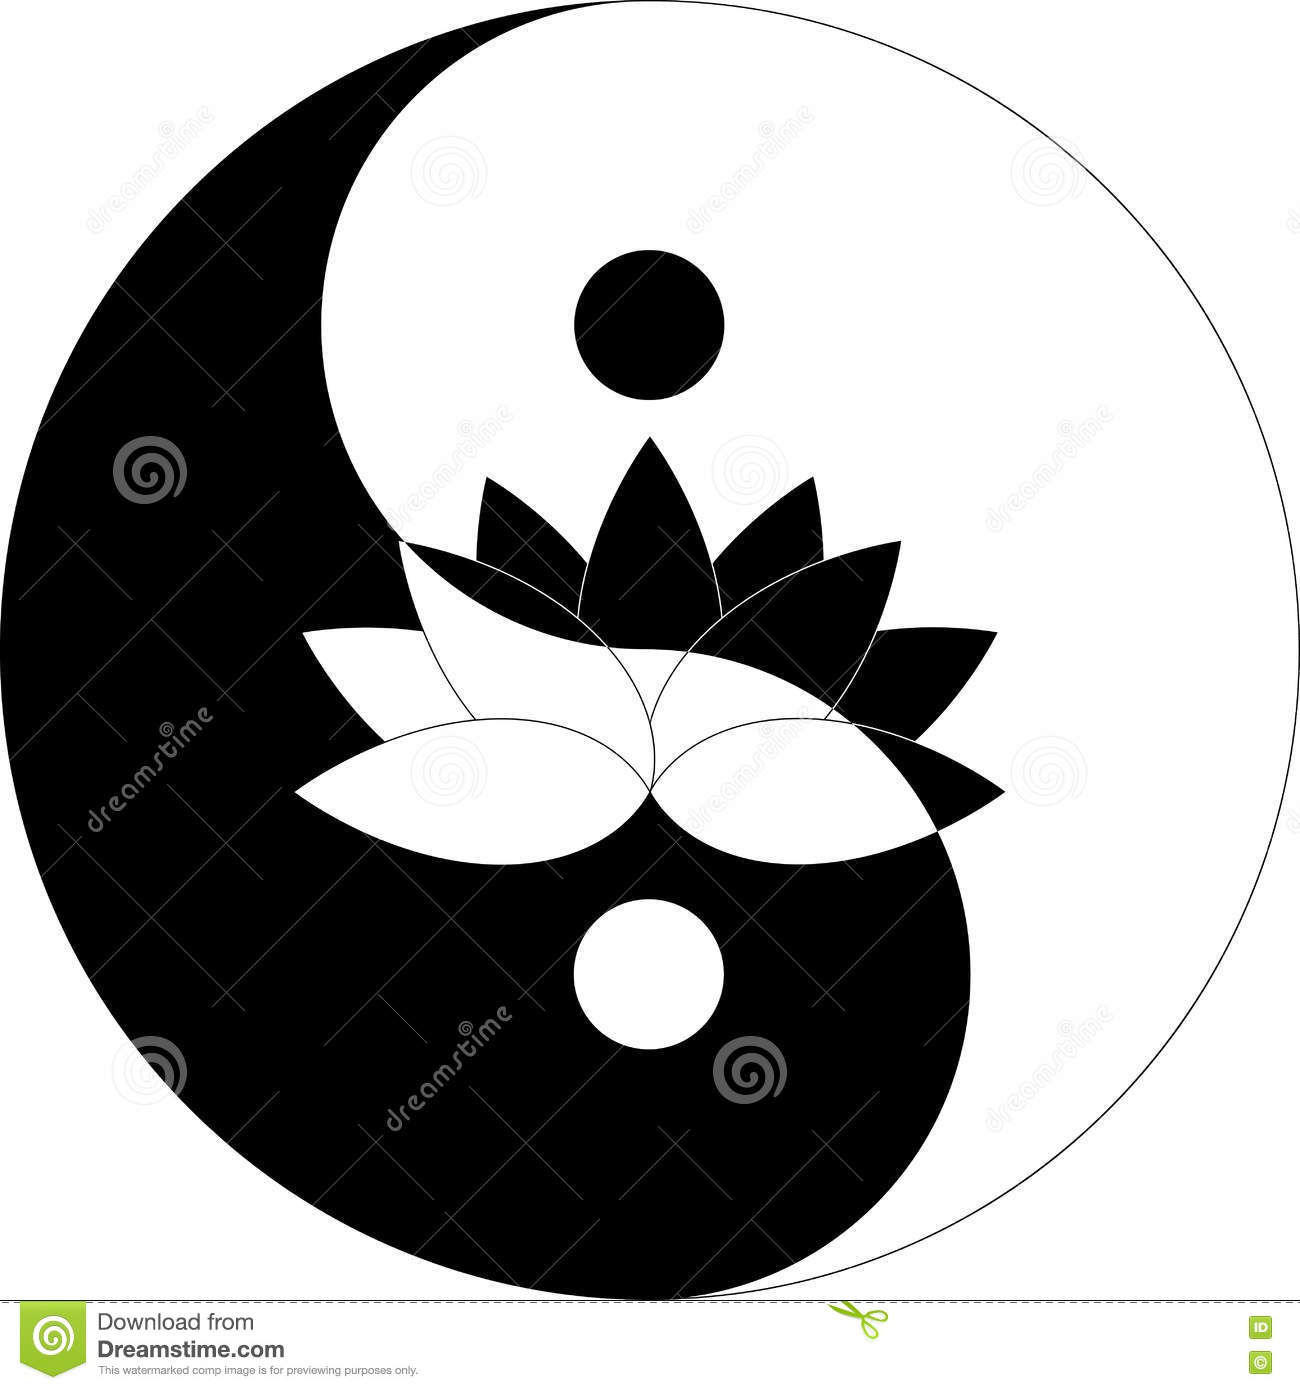 Lotus Flower In Yin Yang Symbol Black And White Stock Vector